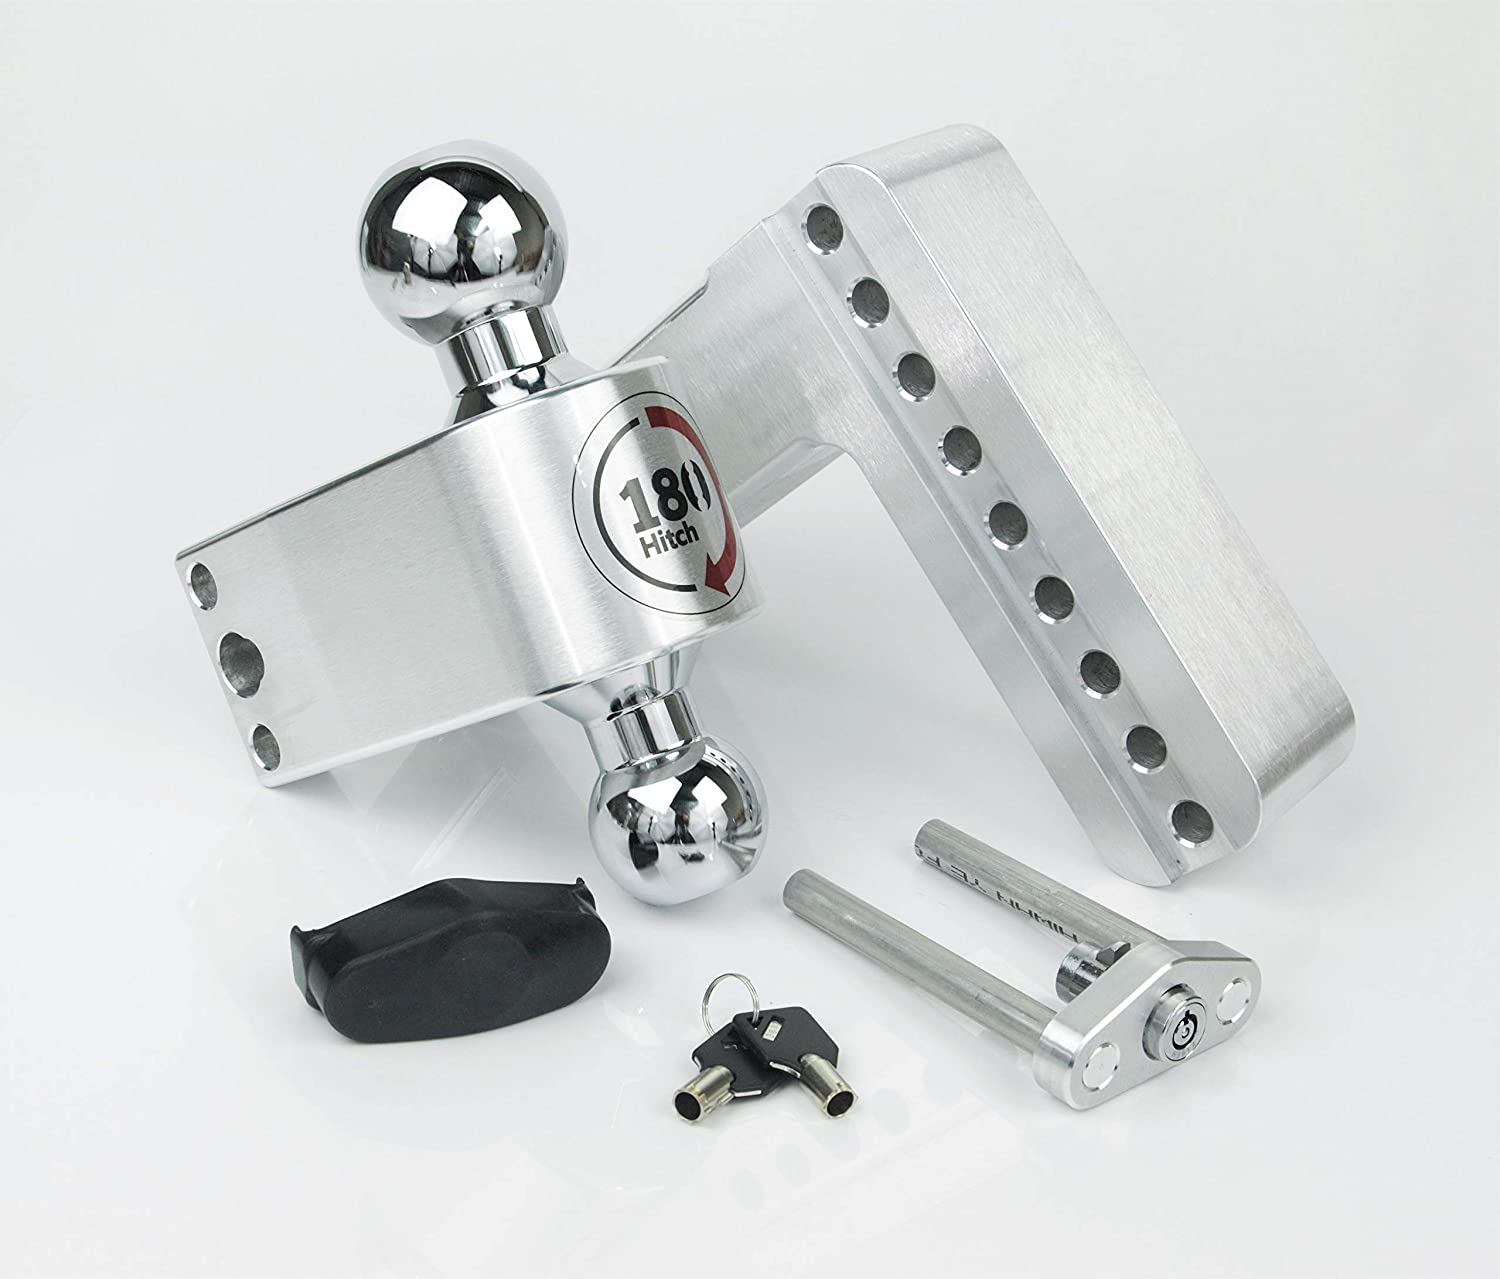 4 Drop 180 Hitch w// 2.5 Shank//Shaft and a Double-pin Key Lock 4 Drop 180 Hitch w// 2.5 Shank//Shaft LTB4-2.5-02 Weigh Safe LTB4-2.5 2 /& 2-5//16 Adjustable Aluminum Trailer Hitch /& Ball Mount Stainless Steel Combo Ball